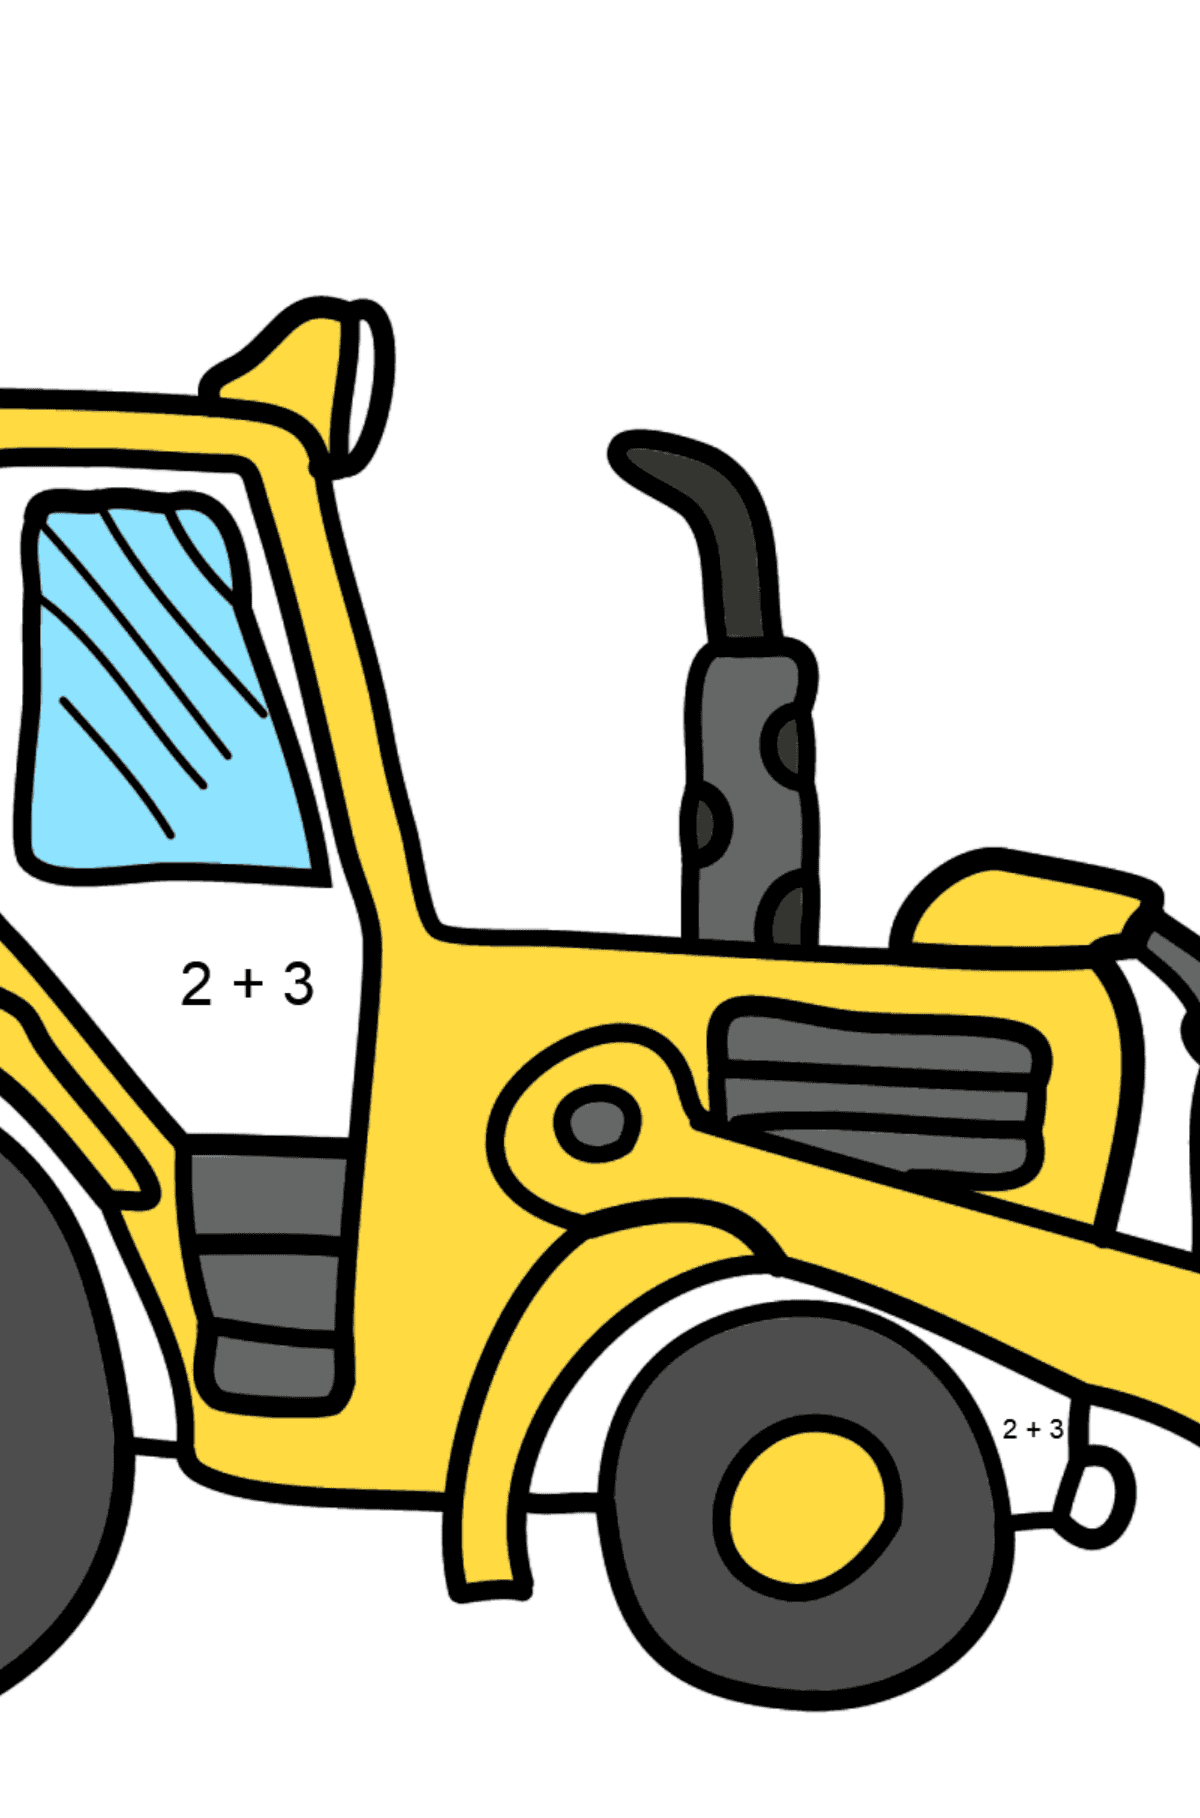 Coloring Page - A Yellow Tractor - Math Coloring - Addition for Kids